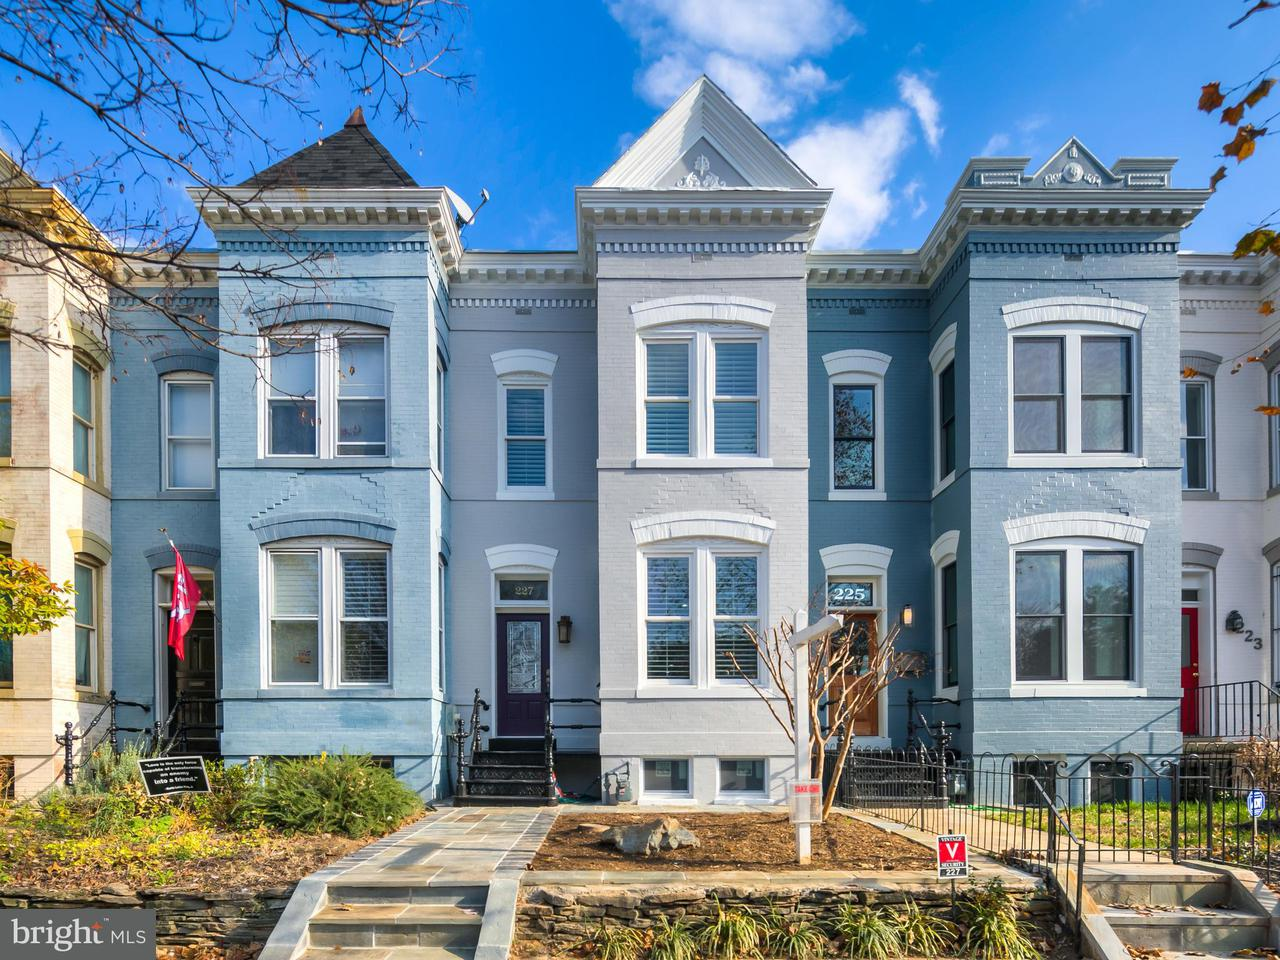 Townhouse for Sale at 227 12th St Ne 227 12th St Ne Washington, District Of Columbia 20002 United States